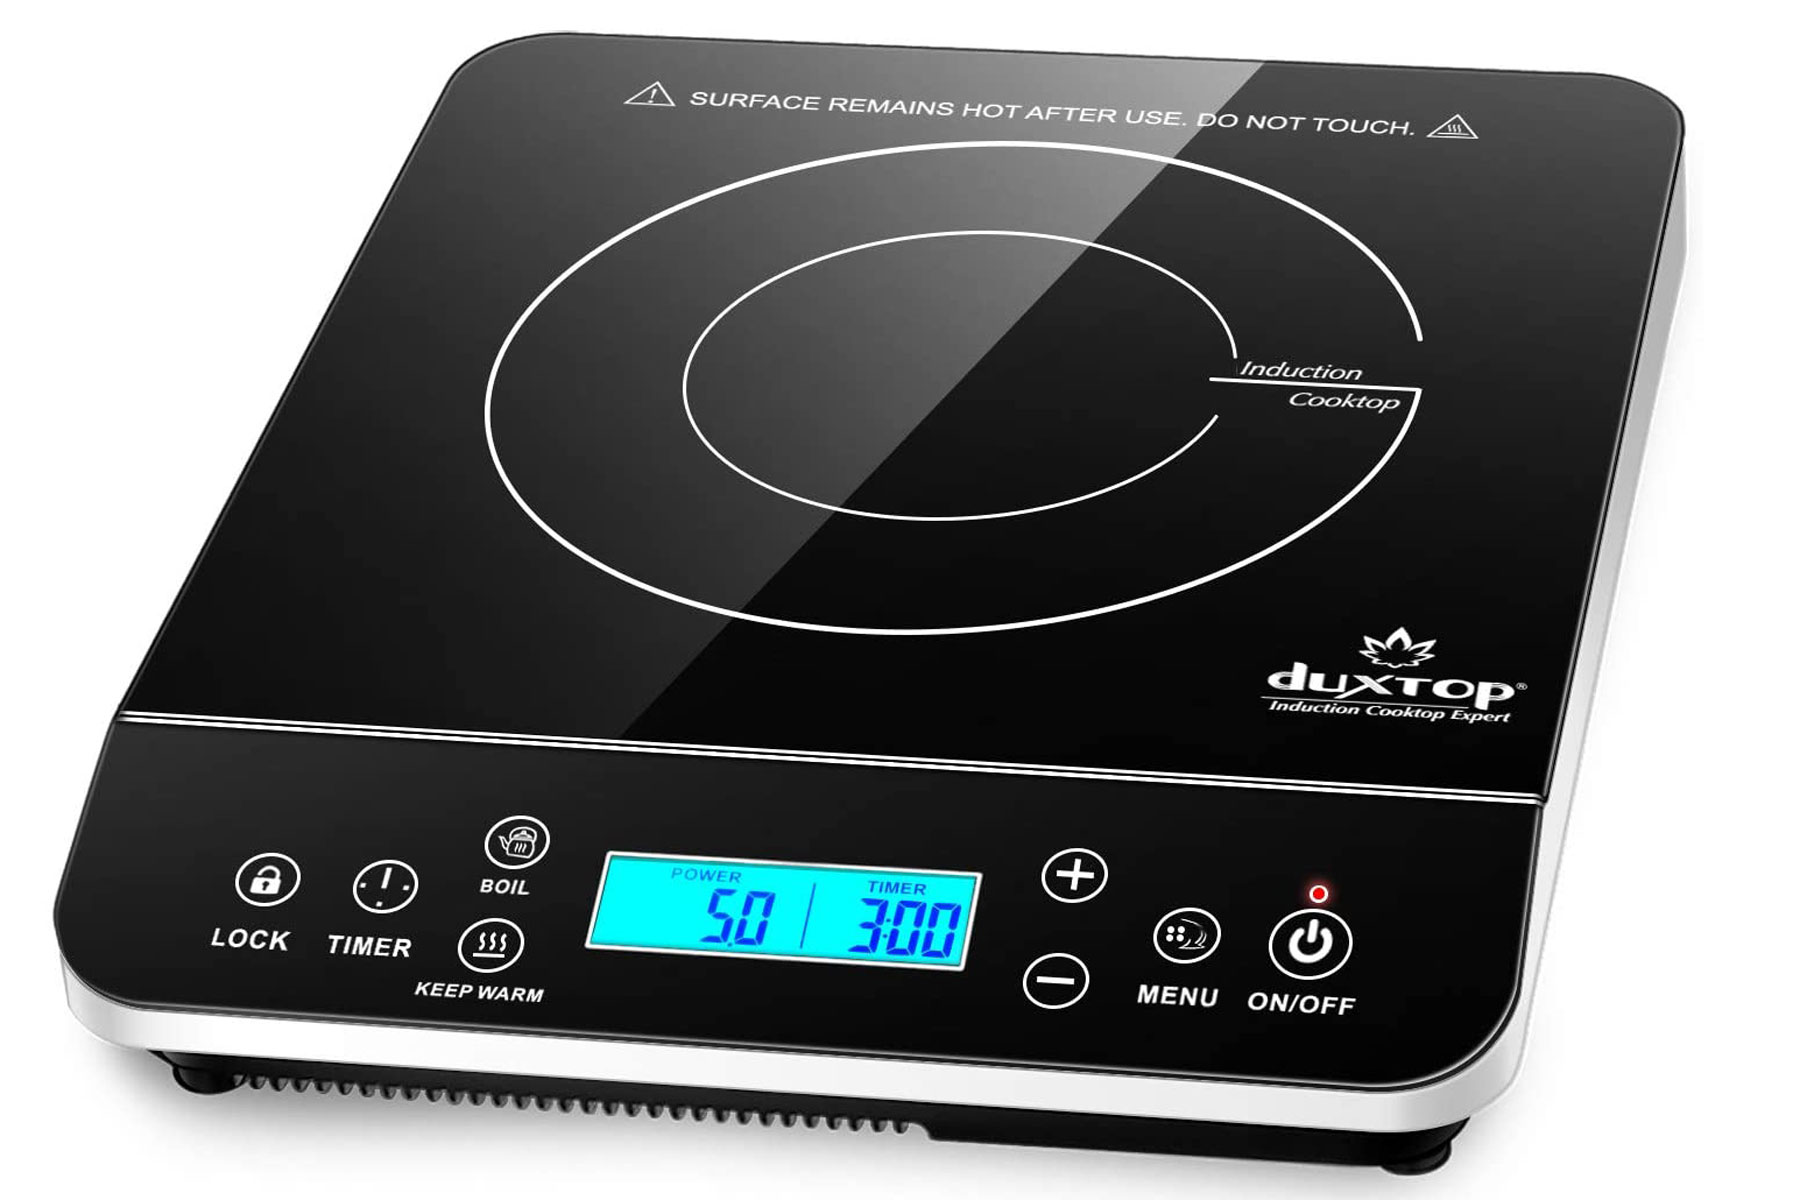 Black portable induction cooktop